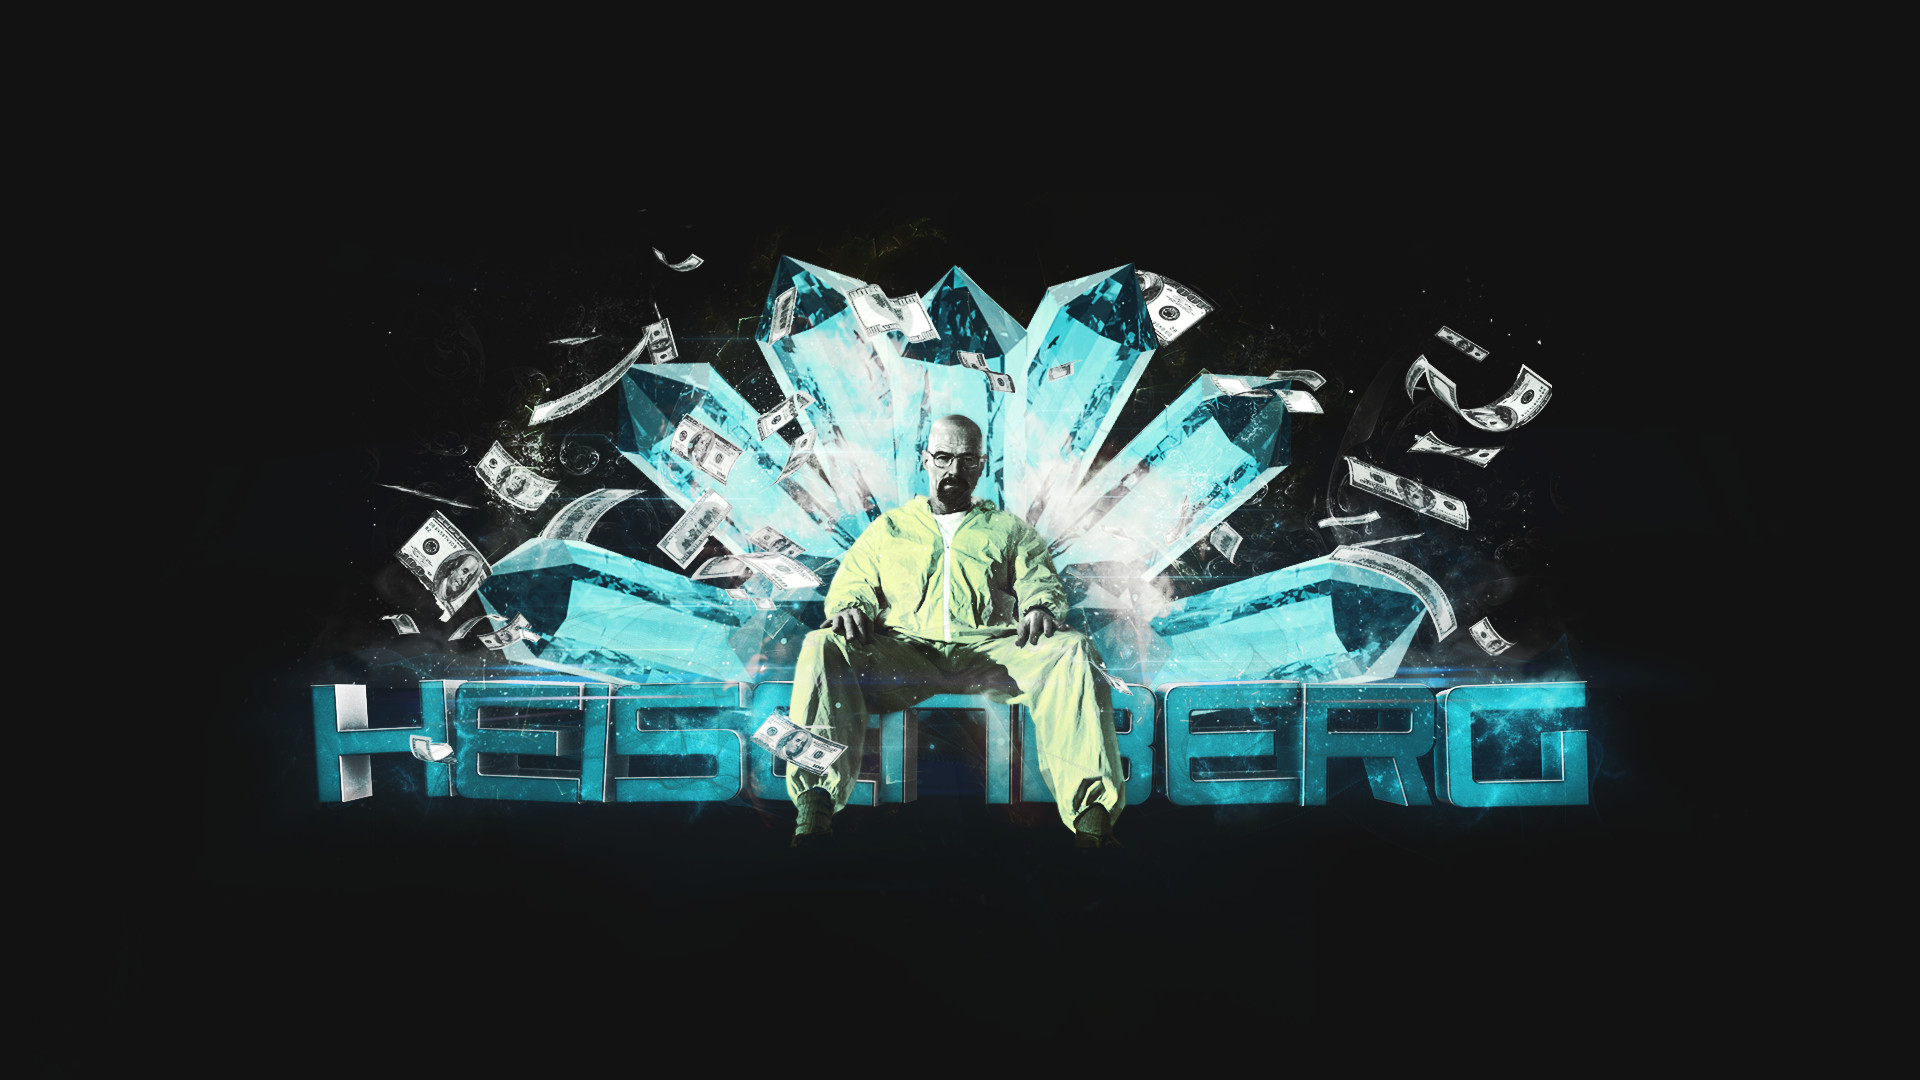 1920x1080 Heisenberg - Breaking Bad HD Wallpaper